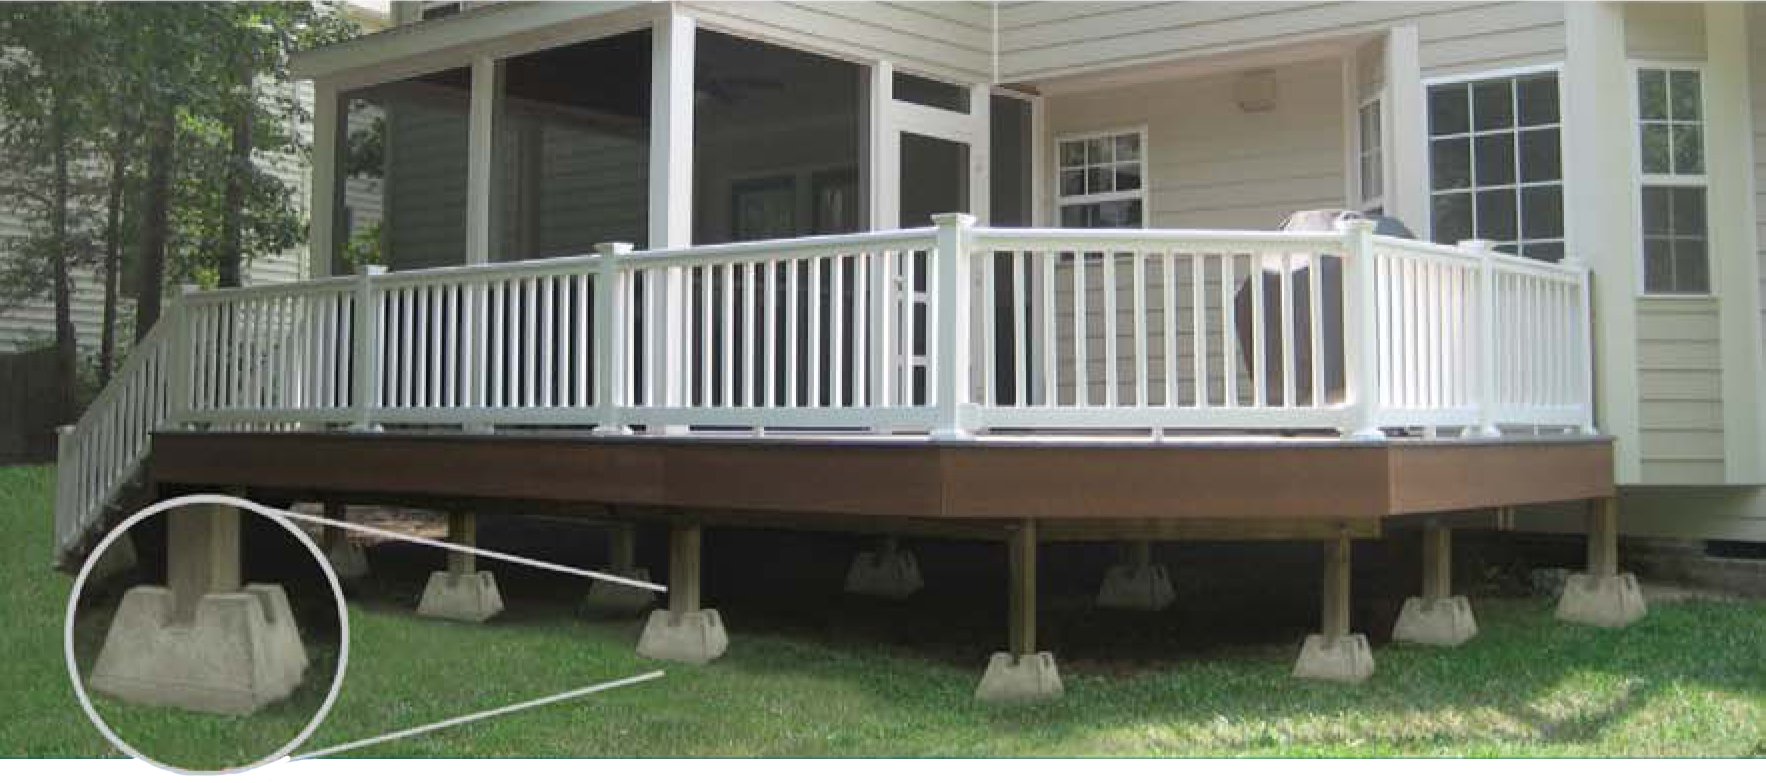 Deck also Index together with 2 557 0 further 837174 likewise 1 Hour Deck. on deck plans using dek blocks